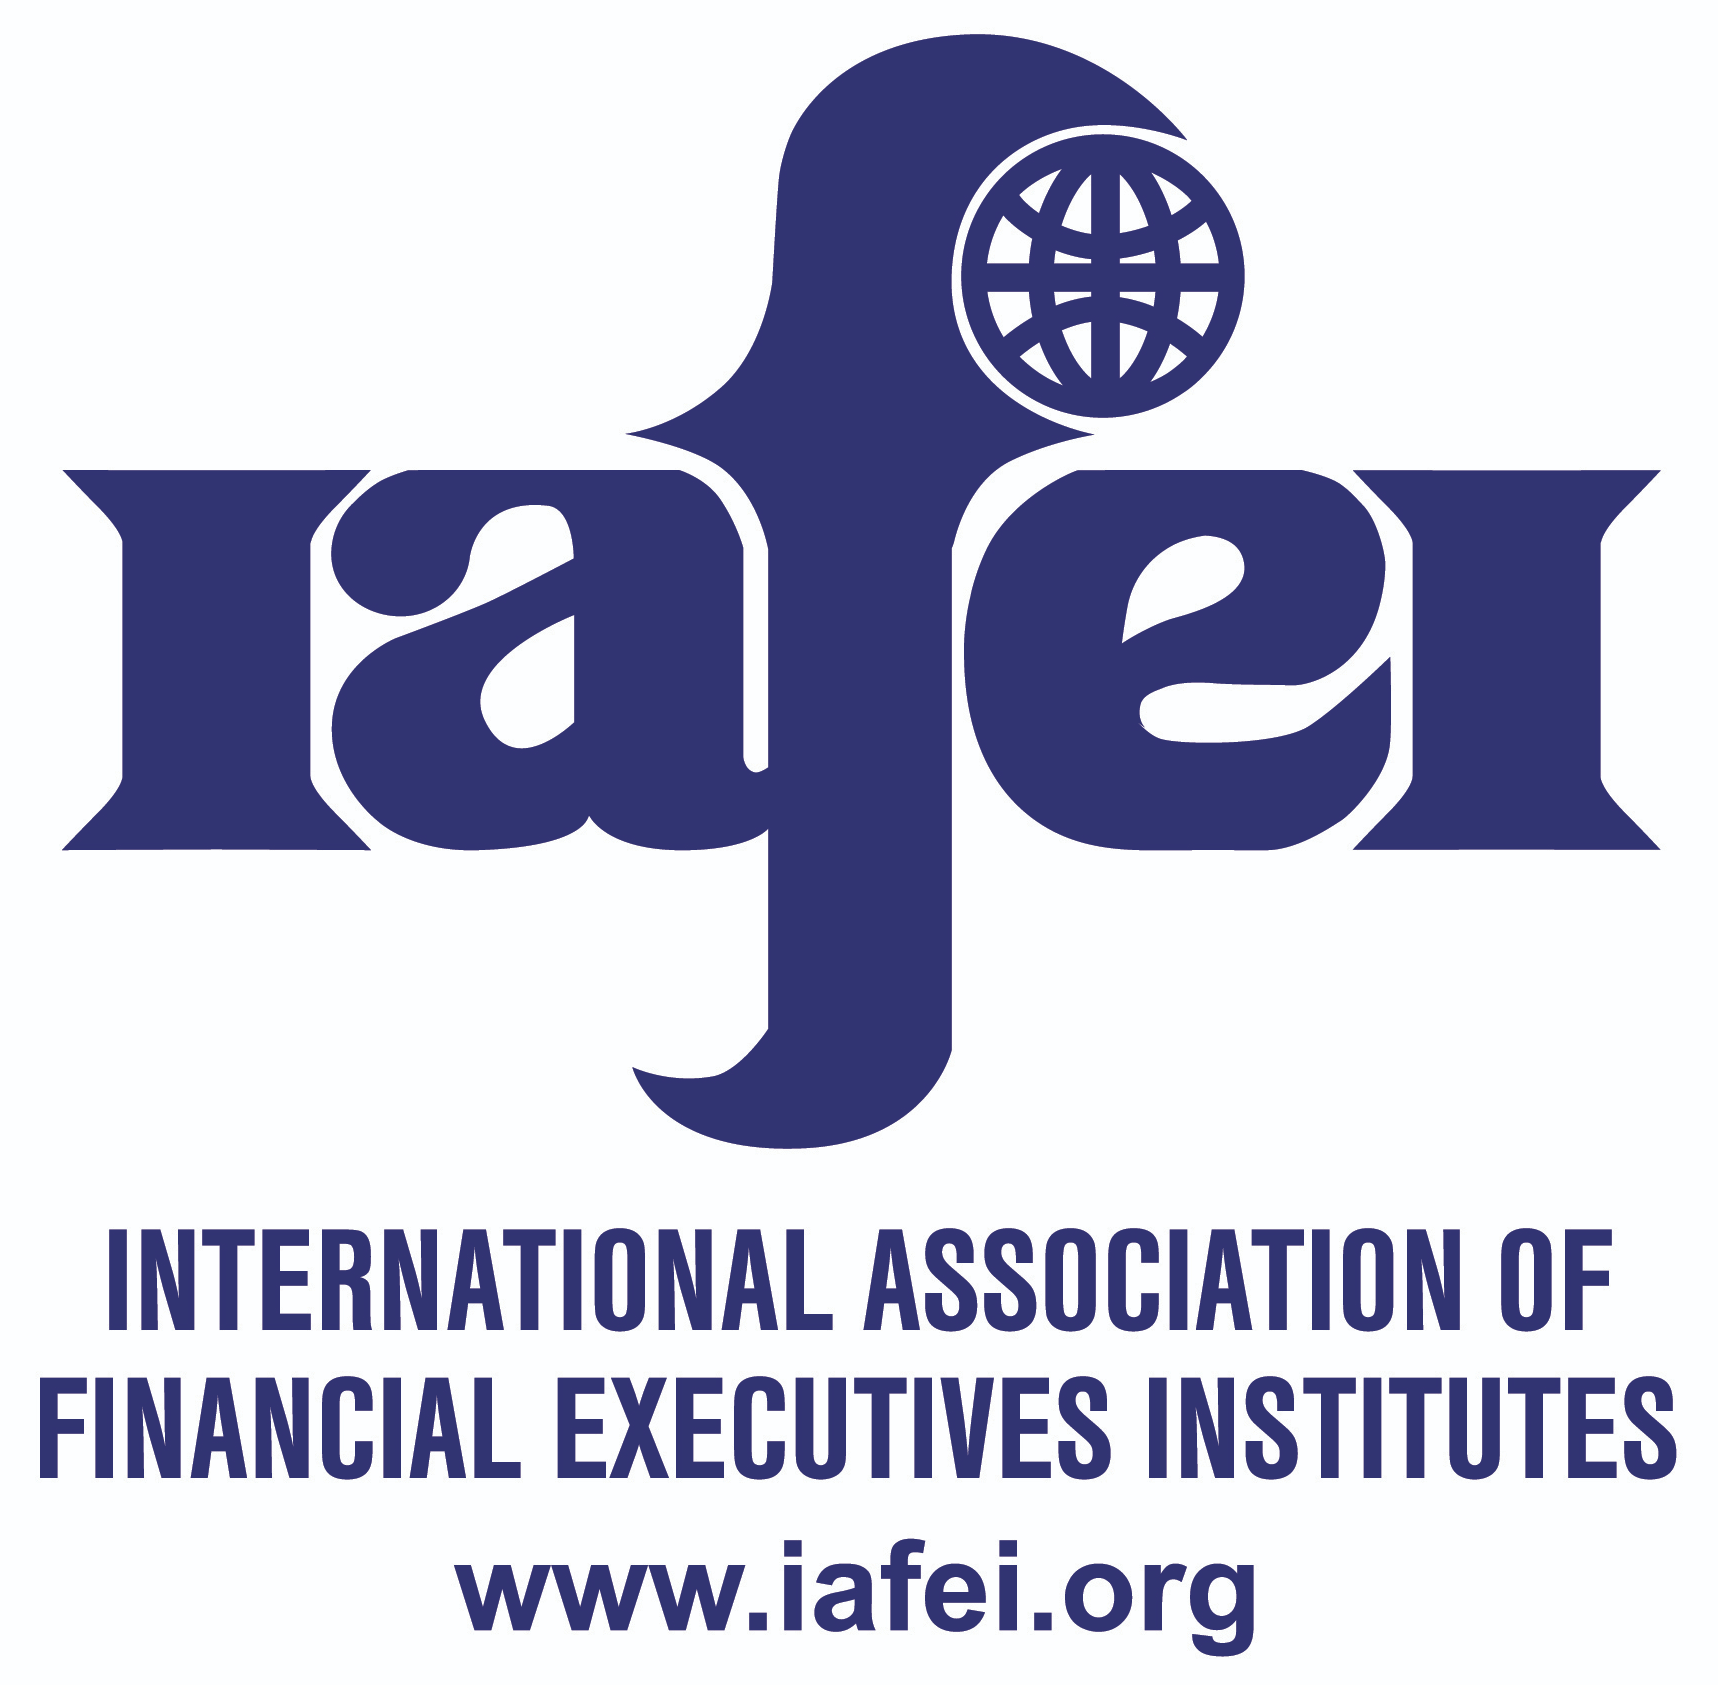 International Association of Financial Executive Institutes